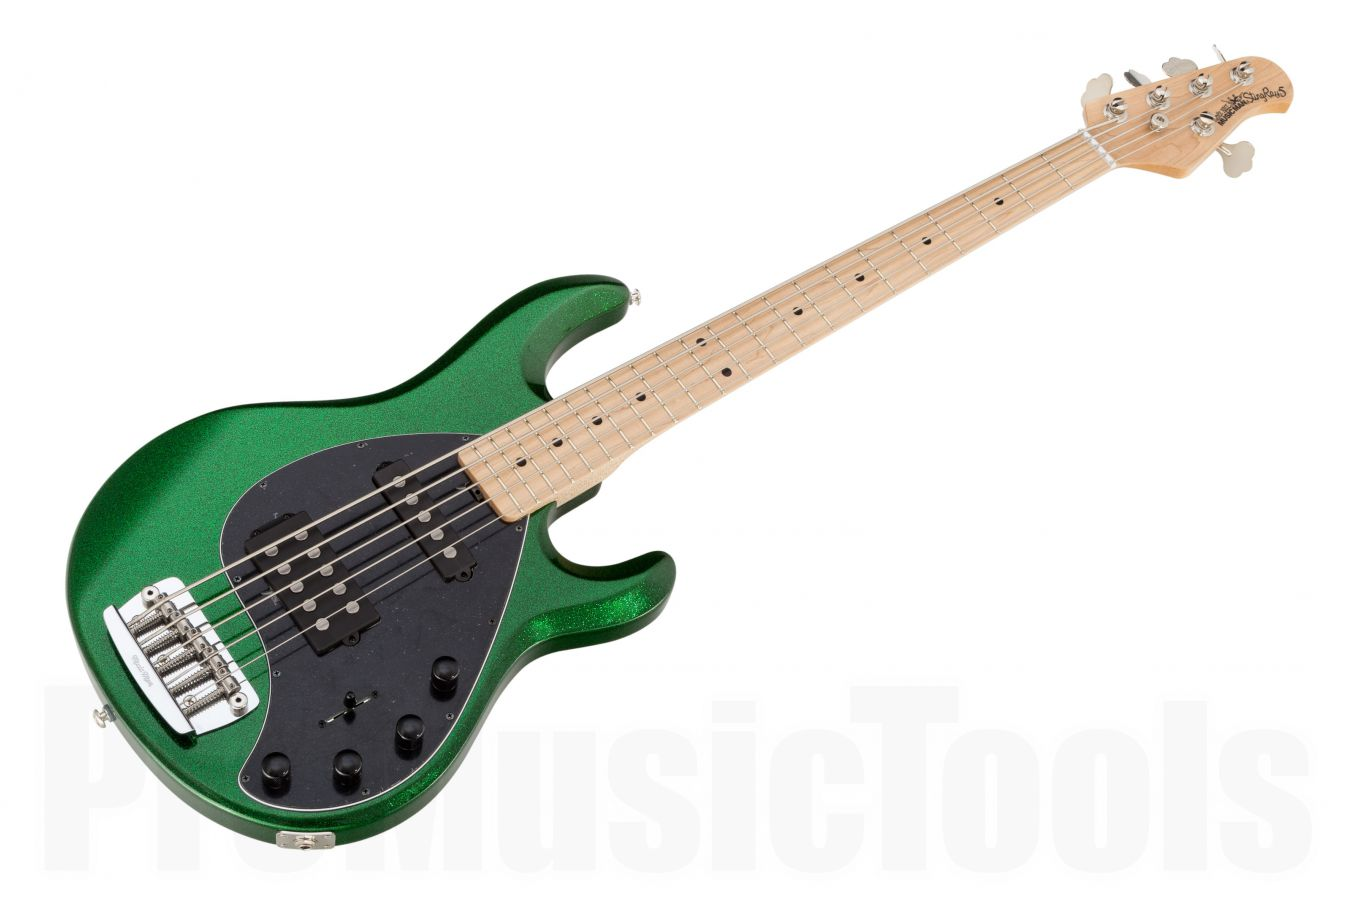 Music Man USA Stingray 5 HS ES - PDN Emerald Green Sparkle Limited Edition MN